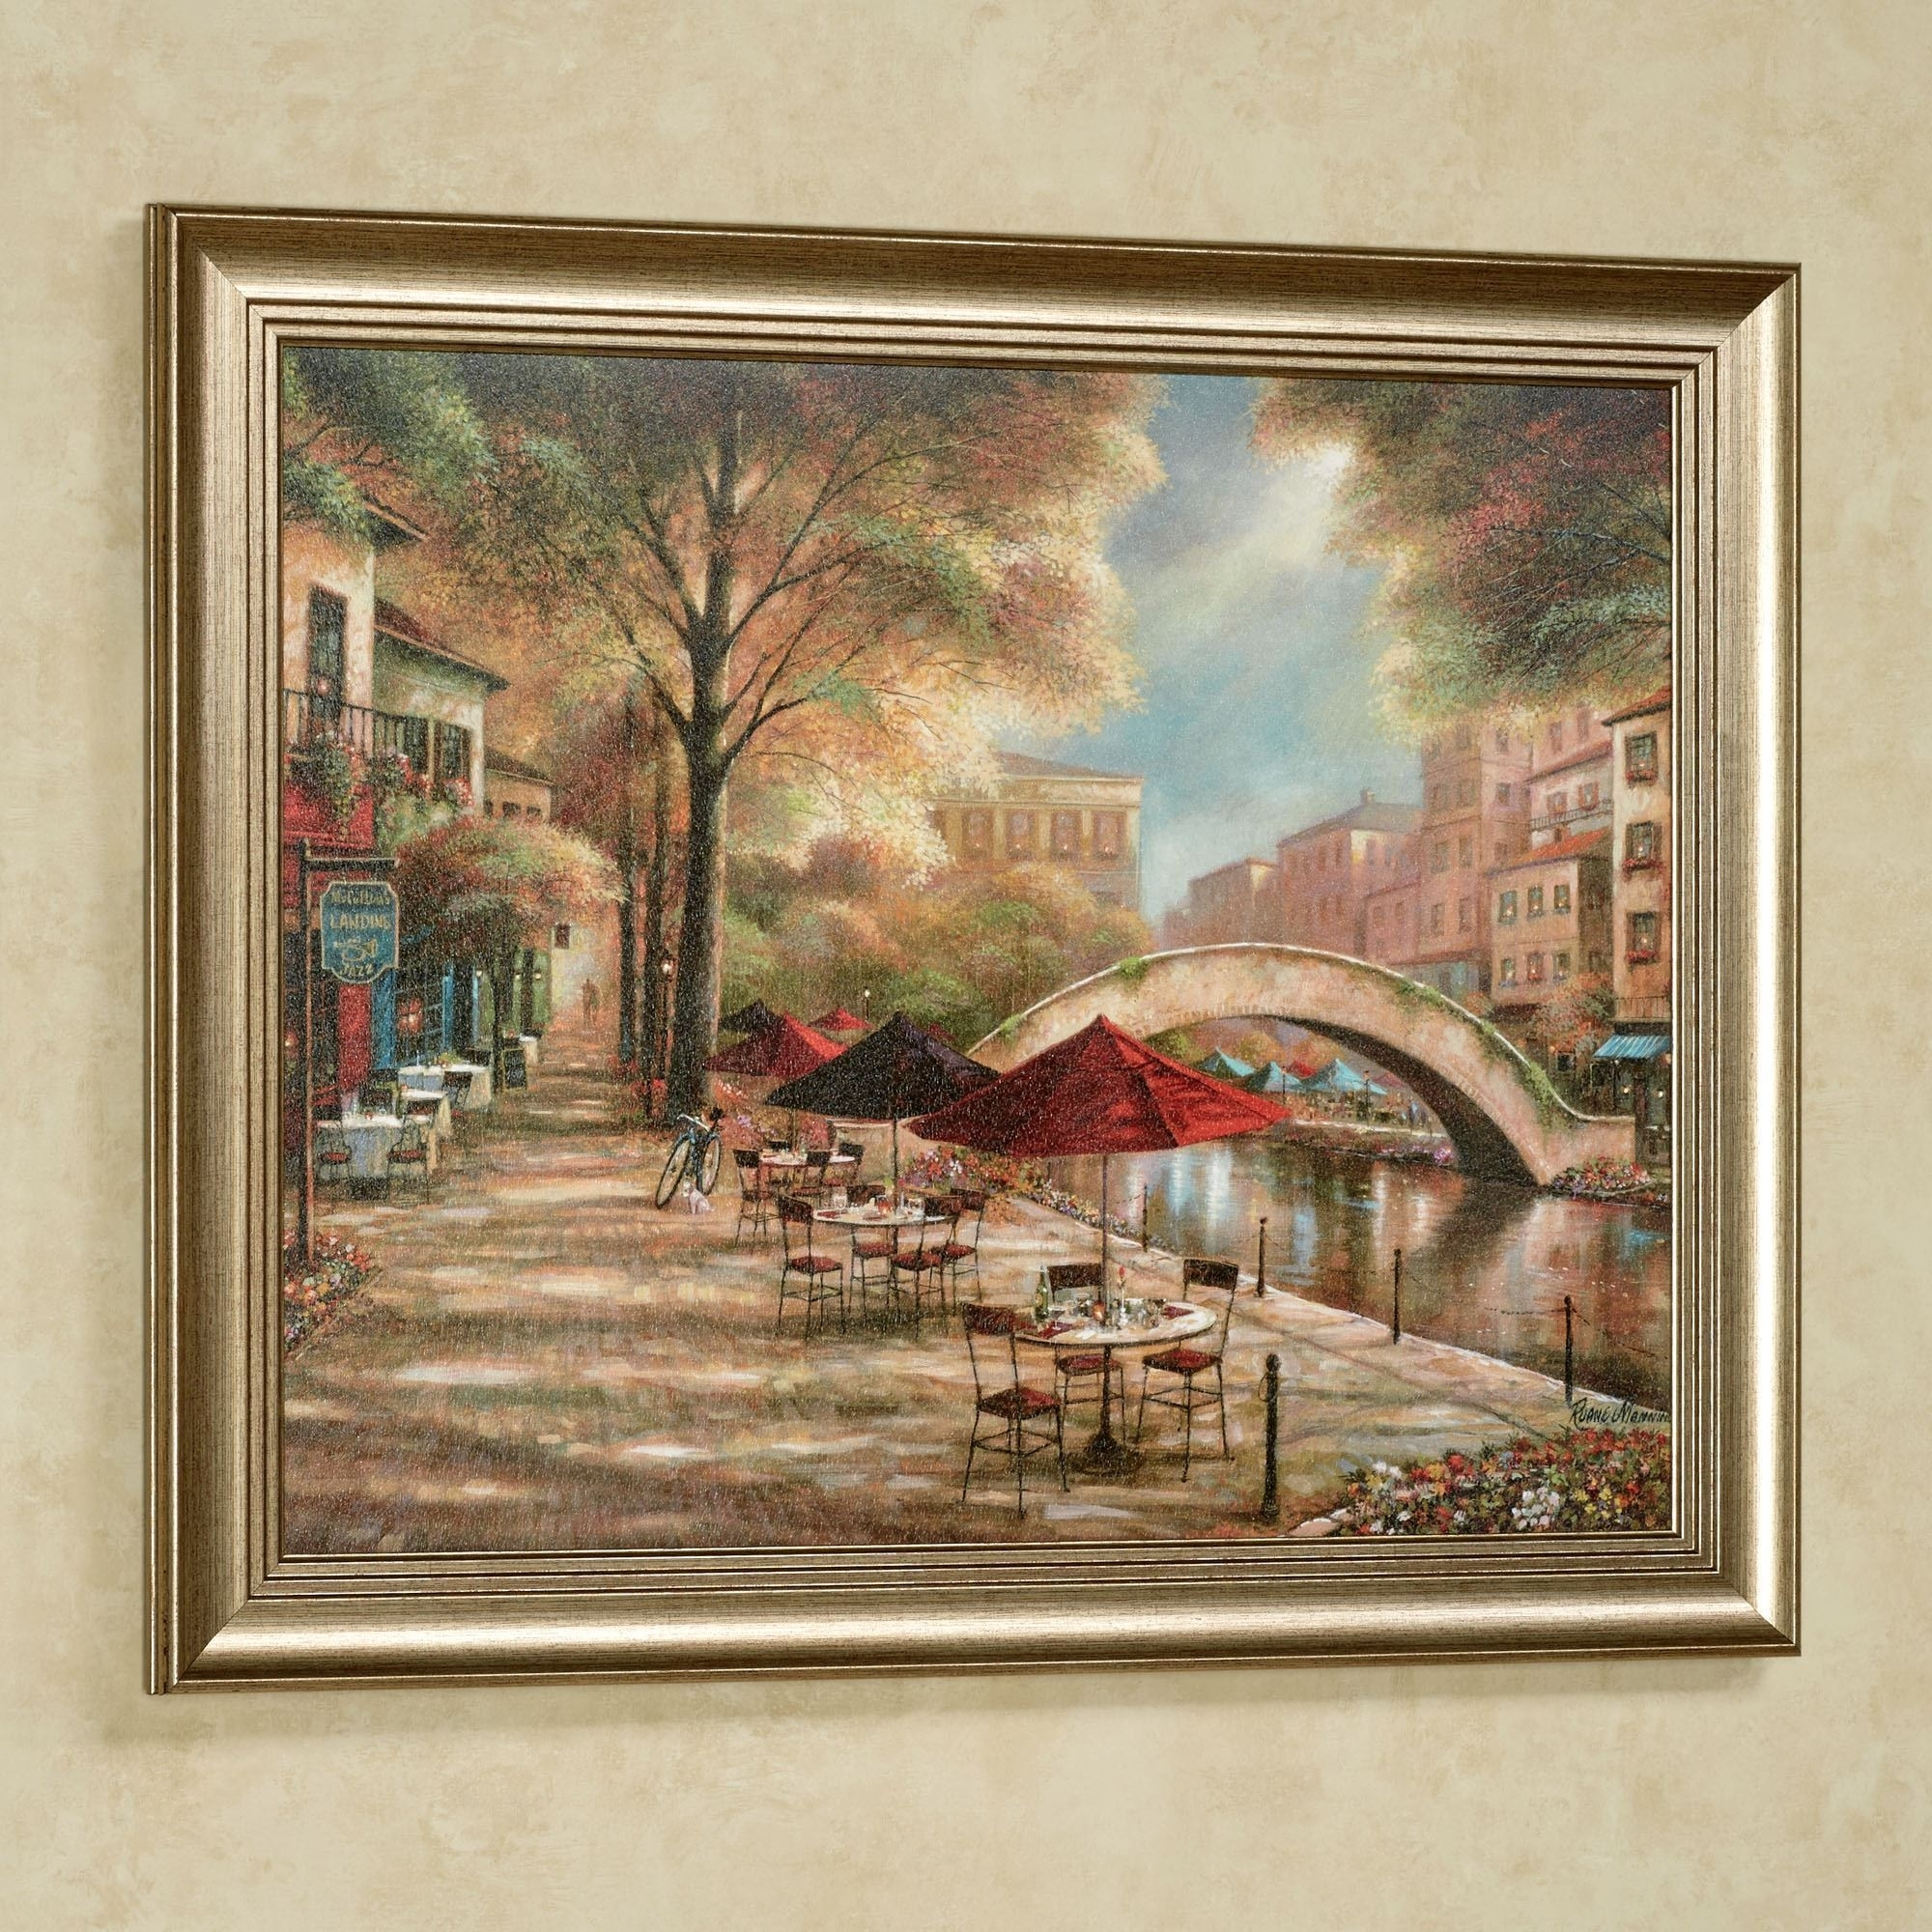 Riverwalk Charm Framed Wall Art Picture Within Best And Newest Framed Wall Art (View 12 of 15)